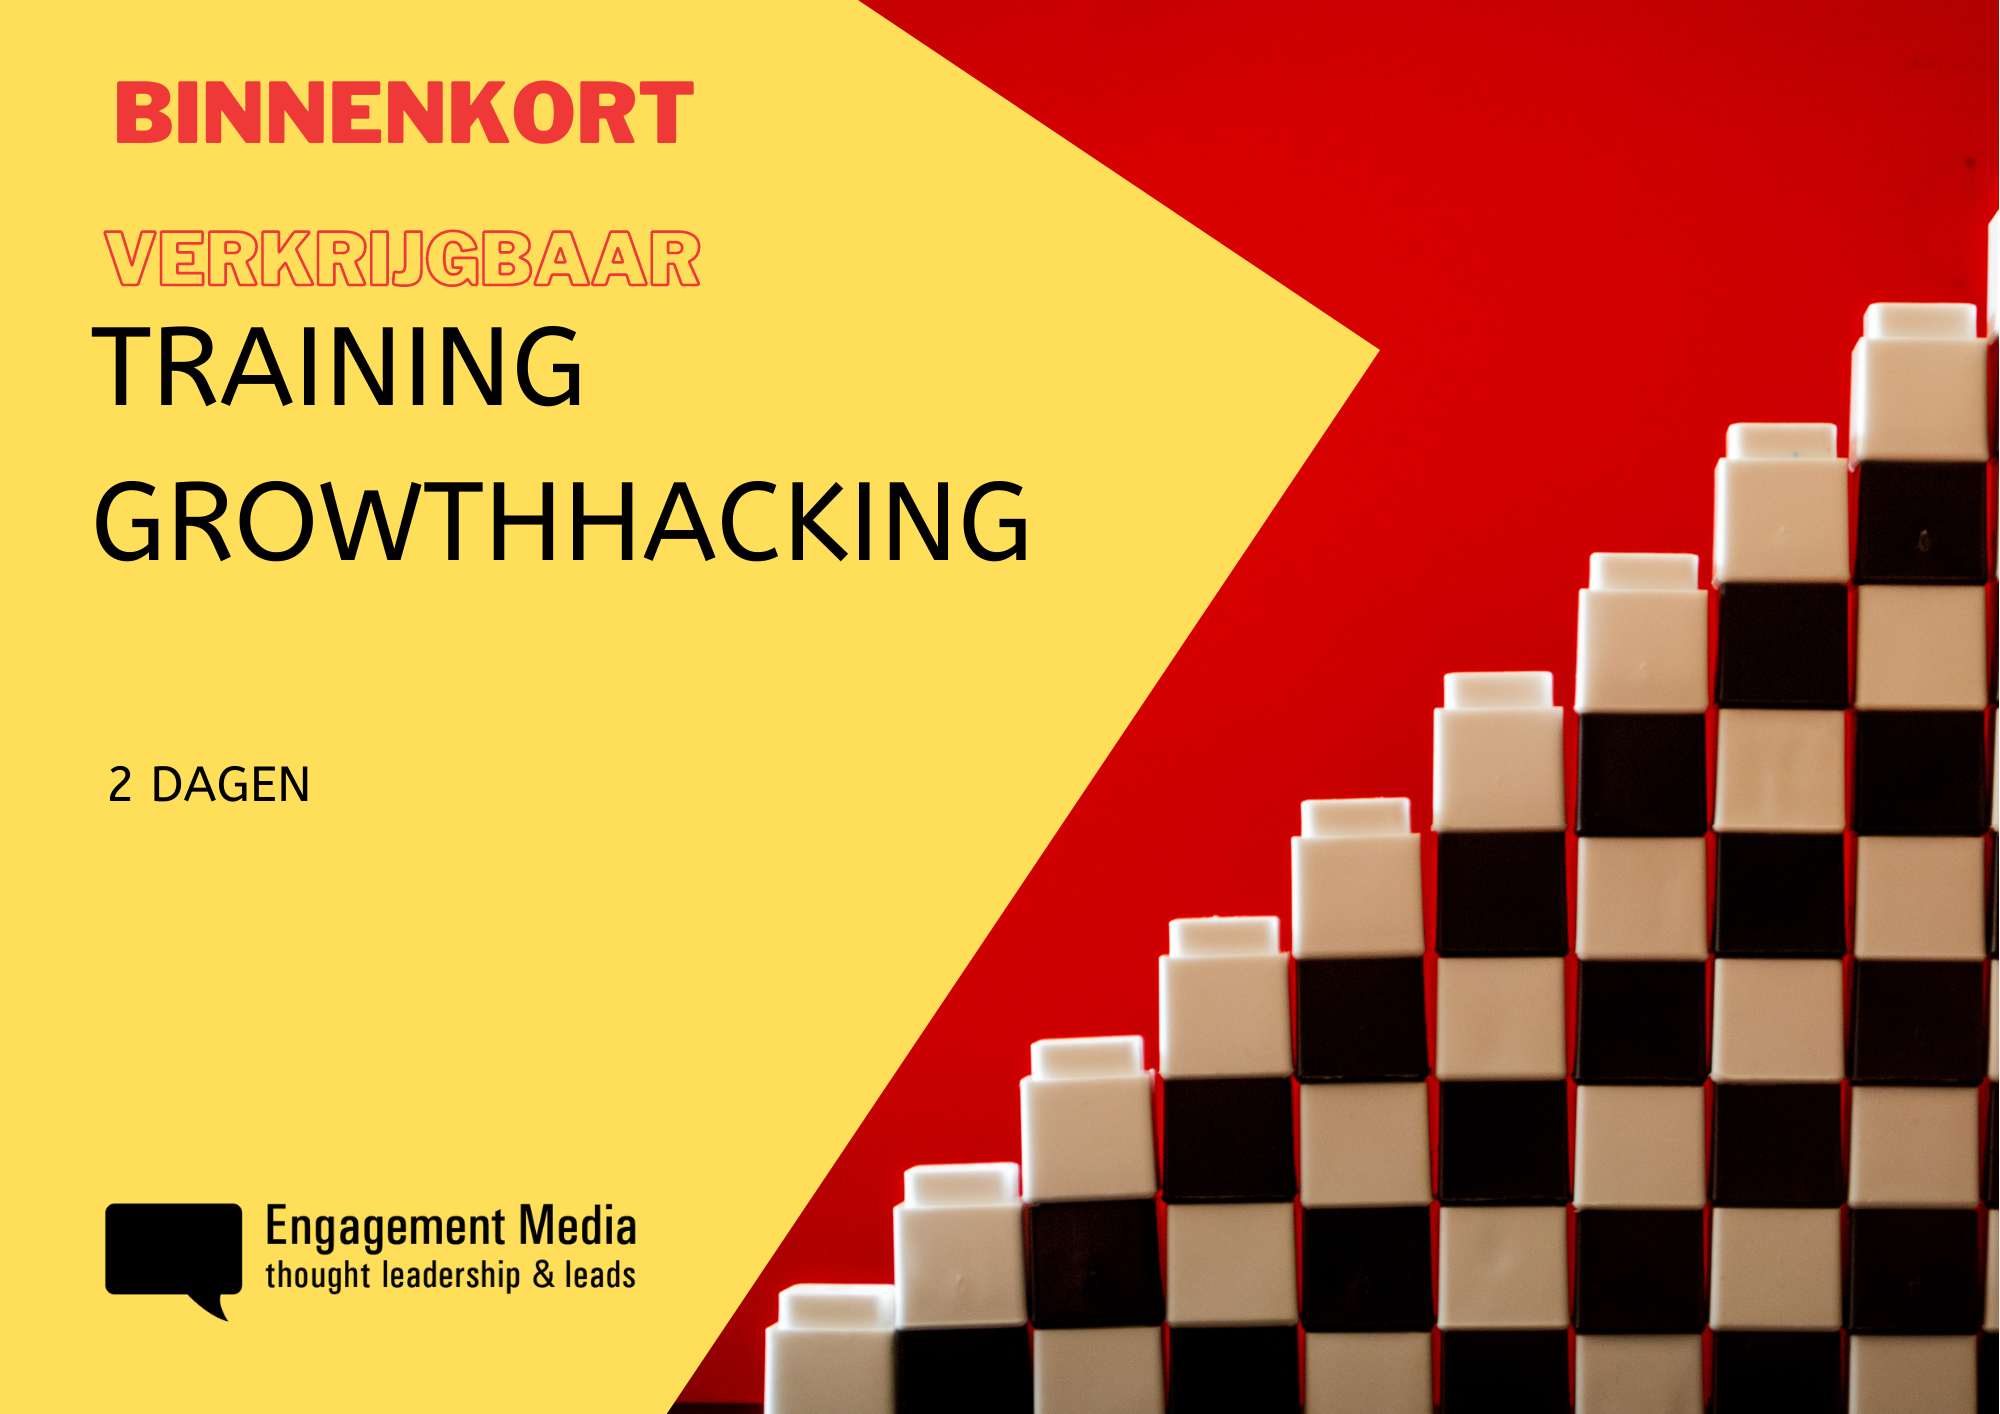 Click om de brochure 'Growthhacking' te downloaden!